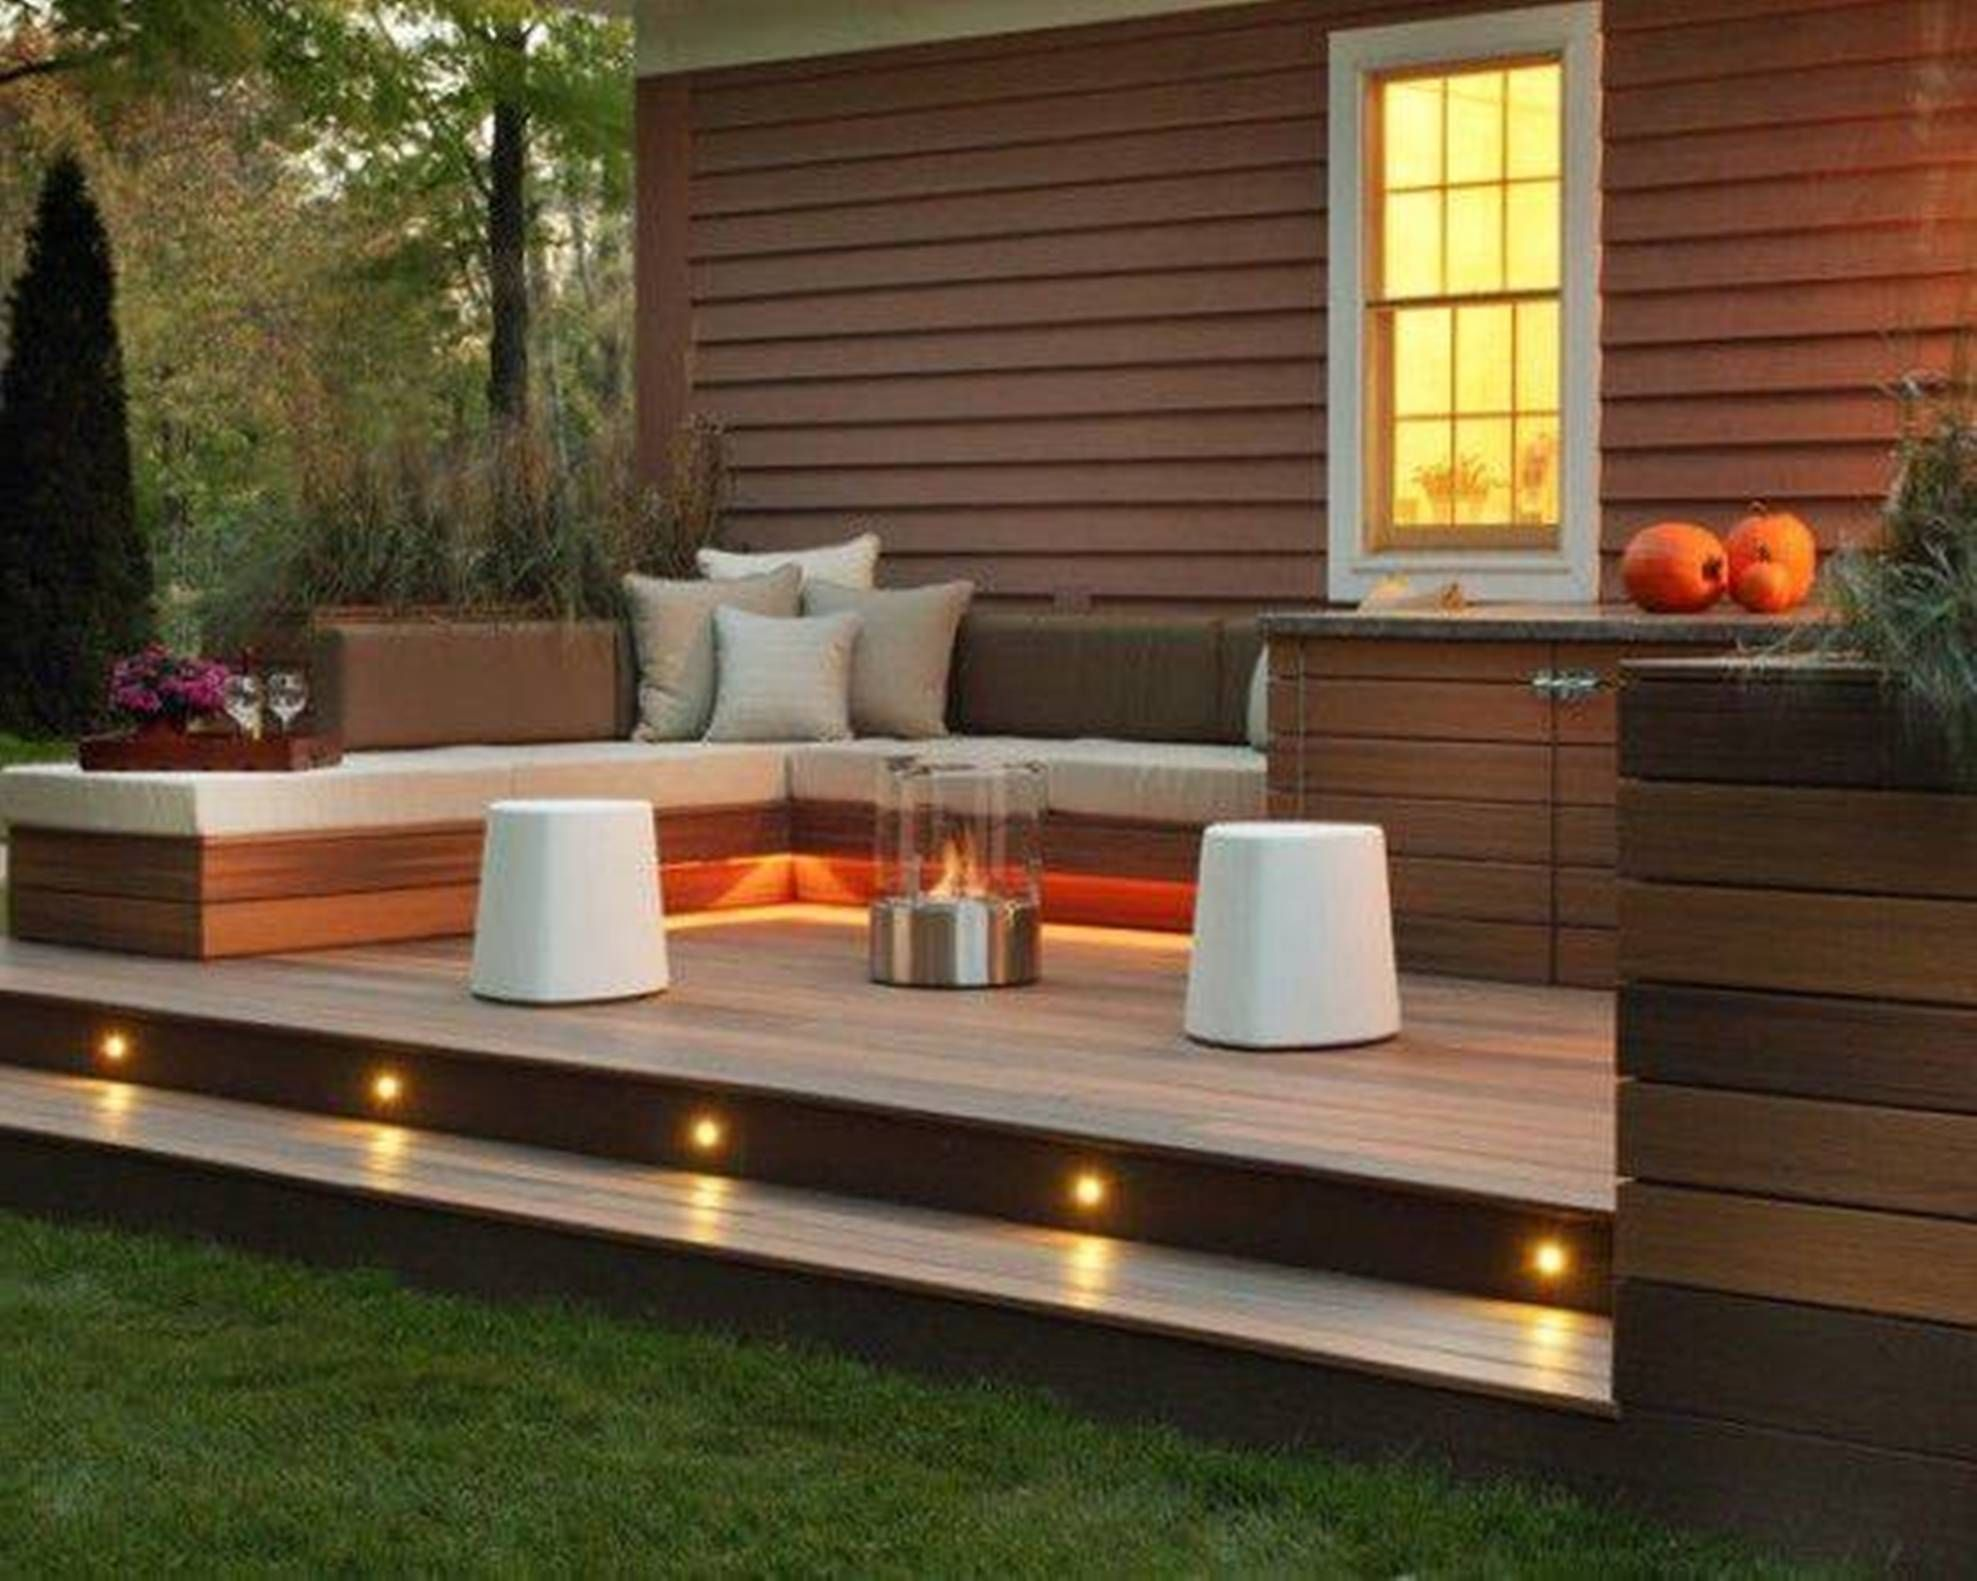 australian backyard deck design planter box google search deck project pinterest backyard deck designs deck design and decking - Deck Ideen Design